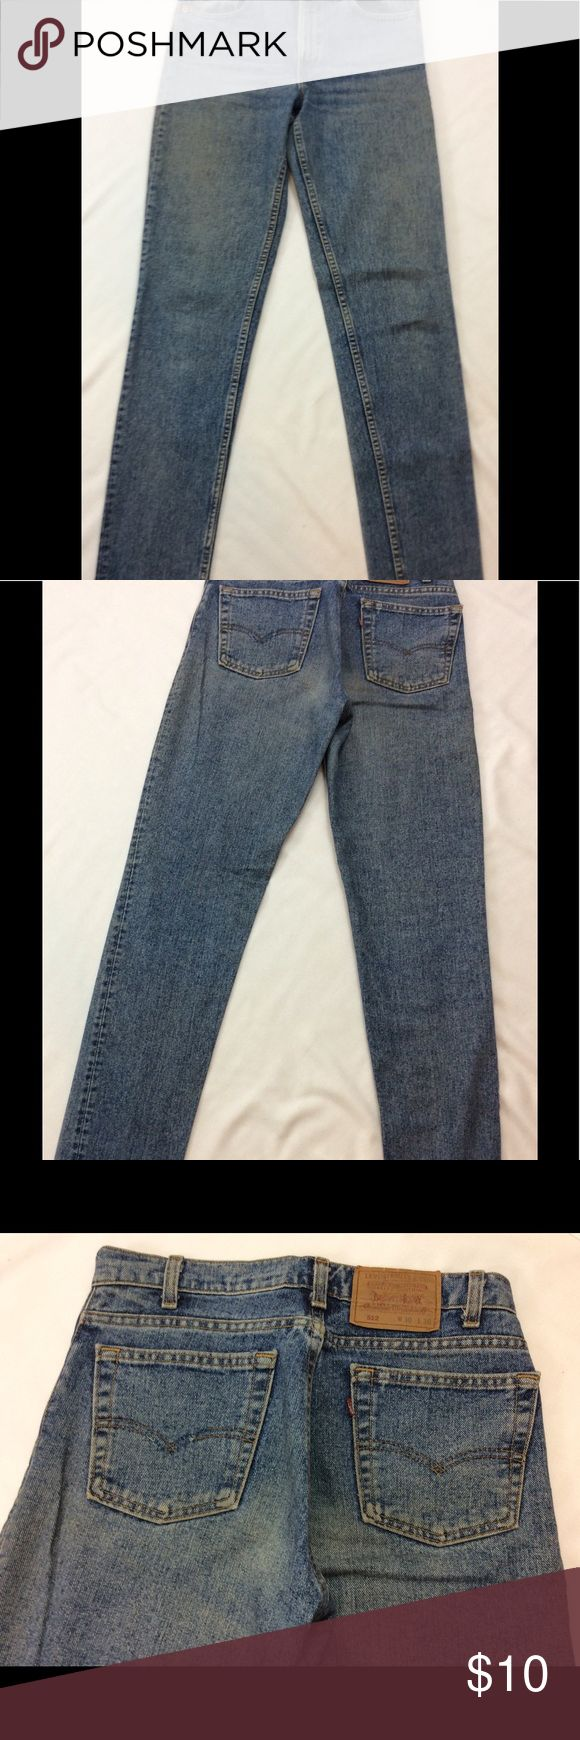 Levi's 512 women's jeans 30/36 tall! These are slimming Levi's 512, Tag reads 30/36. Very good condition, no holes rips tears etc. Levi's Jeans Straight Leg